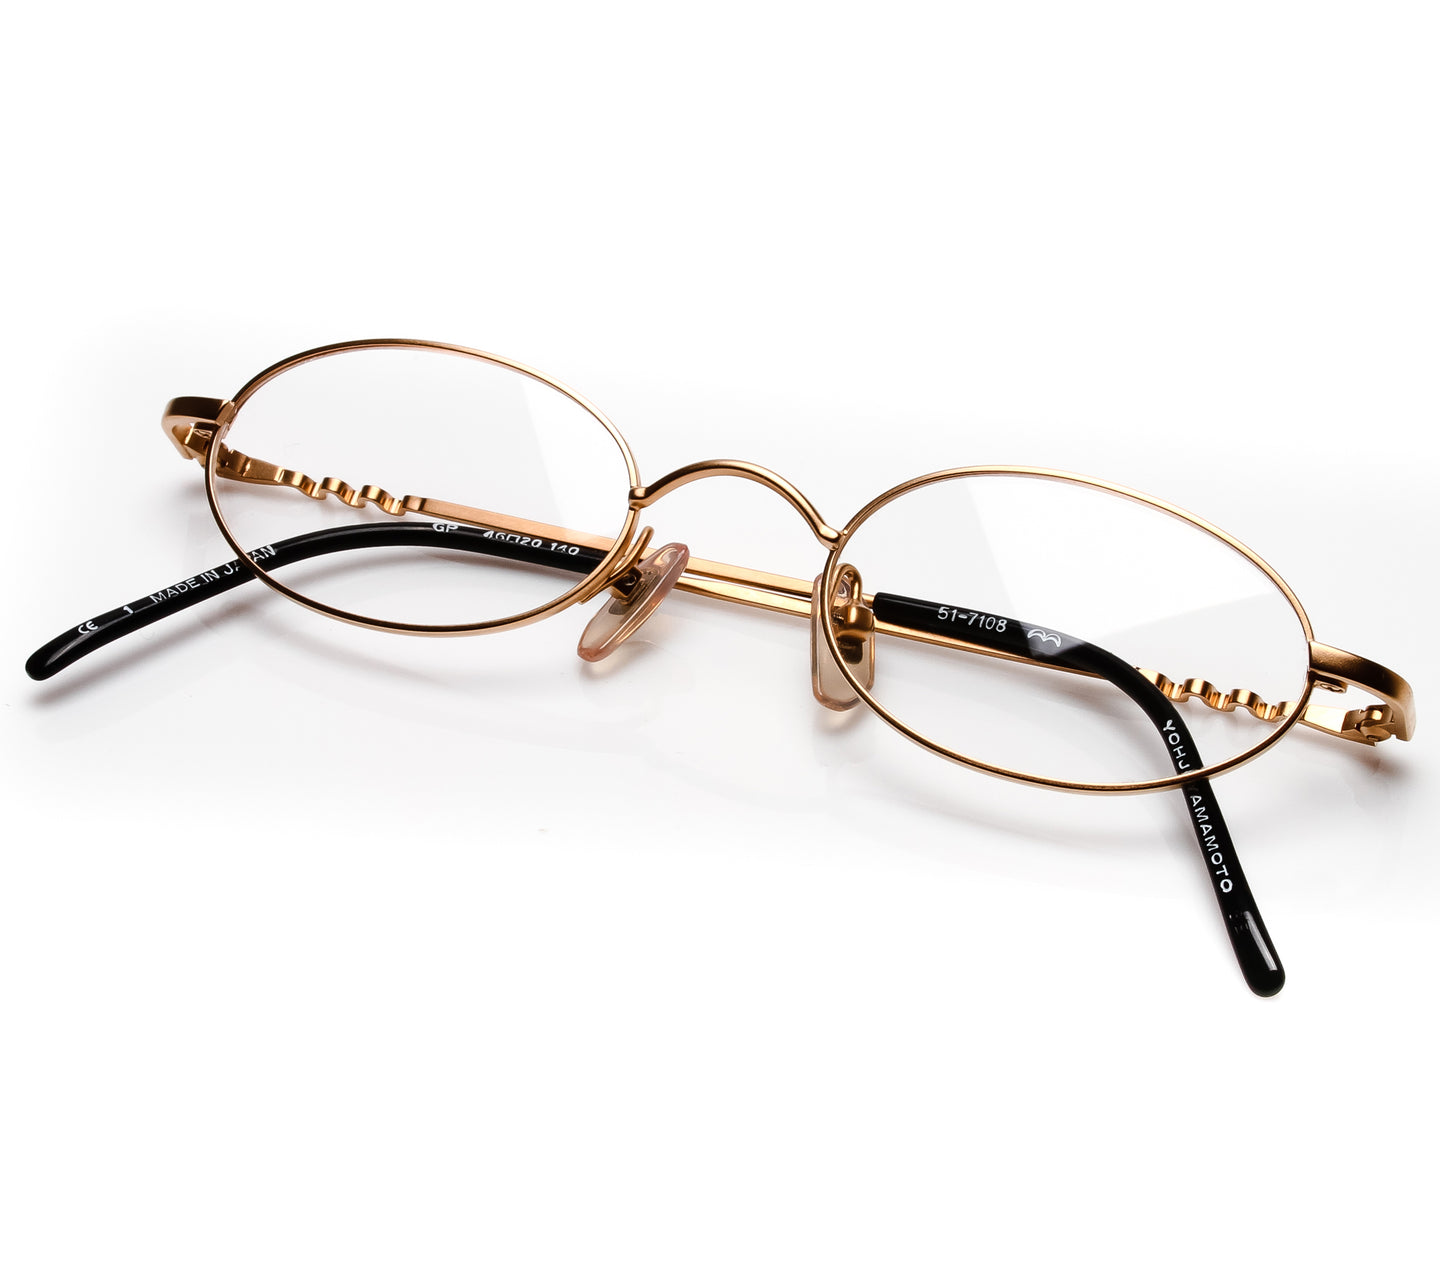 Yohji Yamamoto 51 7108 col1 Thumbnail, Yohji Yamamoto , glasses frames, eyeglasses online, eyeglass frames, mens glasses, womens glasses, buy glasses online, designer eyeglasses, vintage sunglasses, retro sunglasses, vintage glasses, sunglass, eyeglass, glasses, lens, vintage frames company, vf